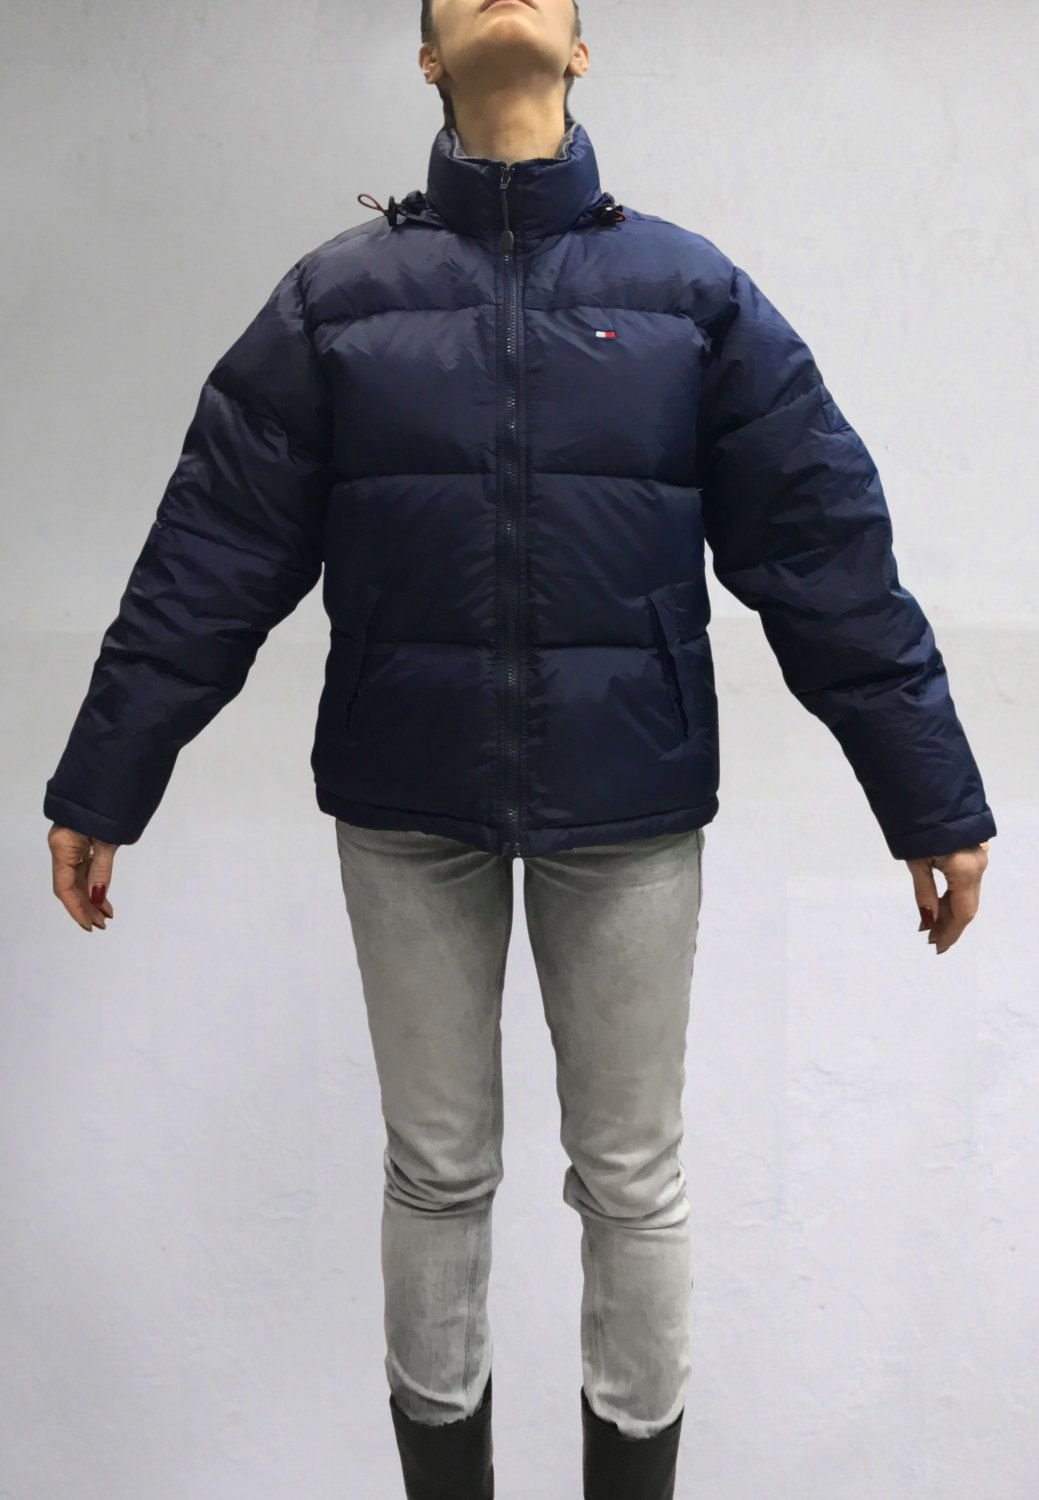 Vintage Tommy Hilfiger Women s Goose Down Puffer Jacket Color Navy Blue  Size S by VapeoVintage on Etsy a3b9b2bd97